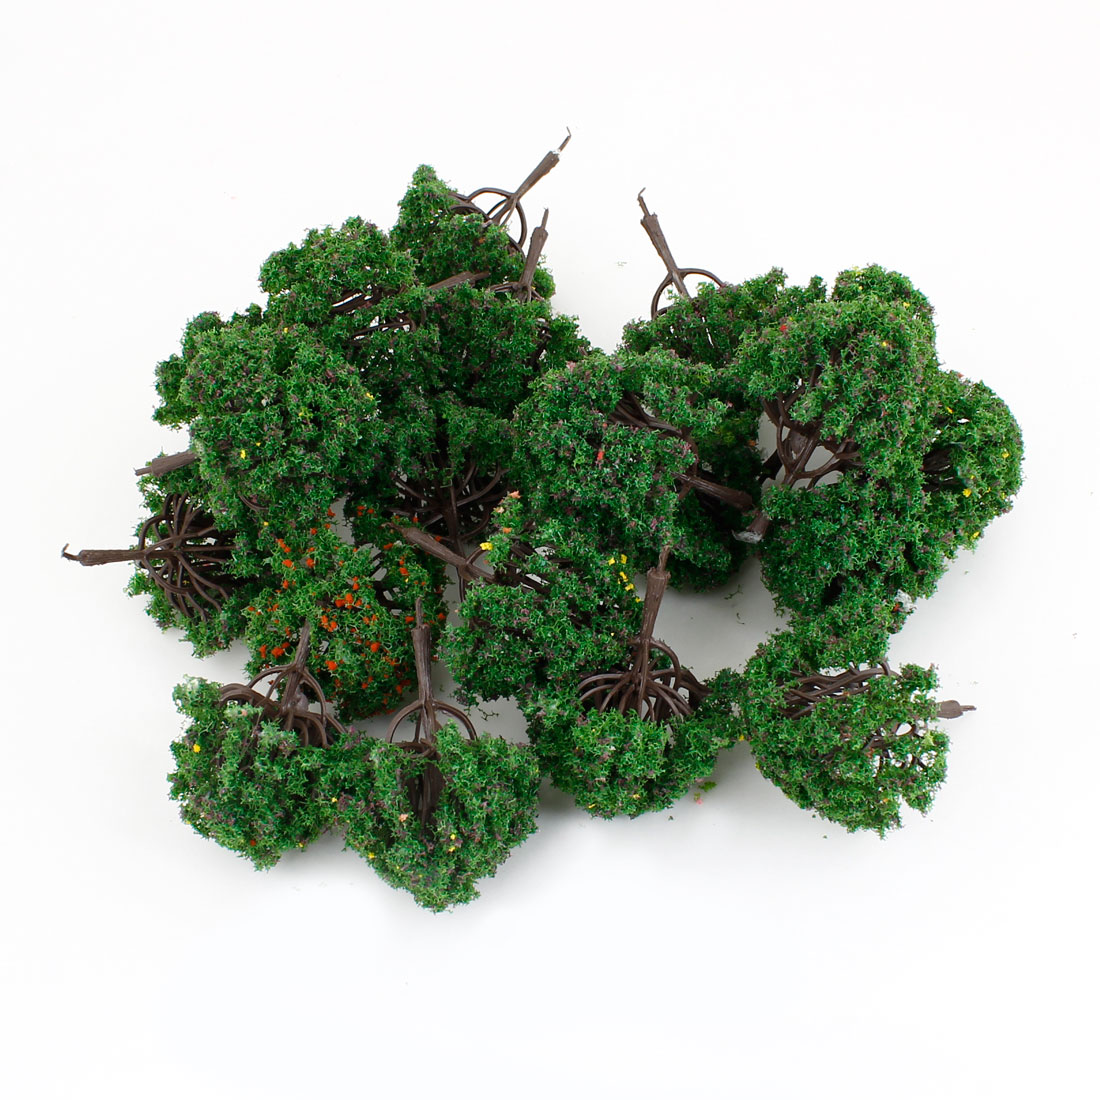 7cm High Scale 1:100 Artificial Green Plastic Model Trees 20 Pcs